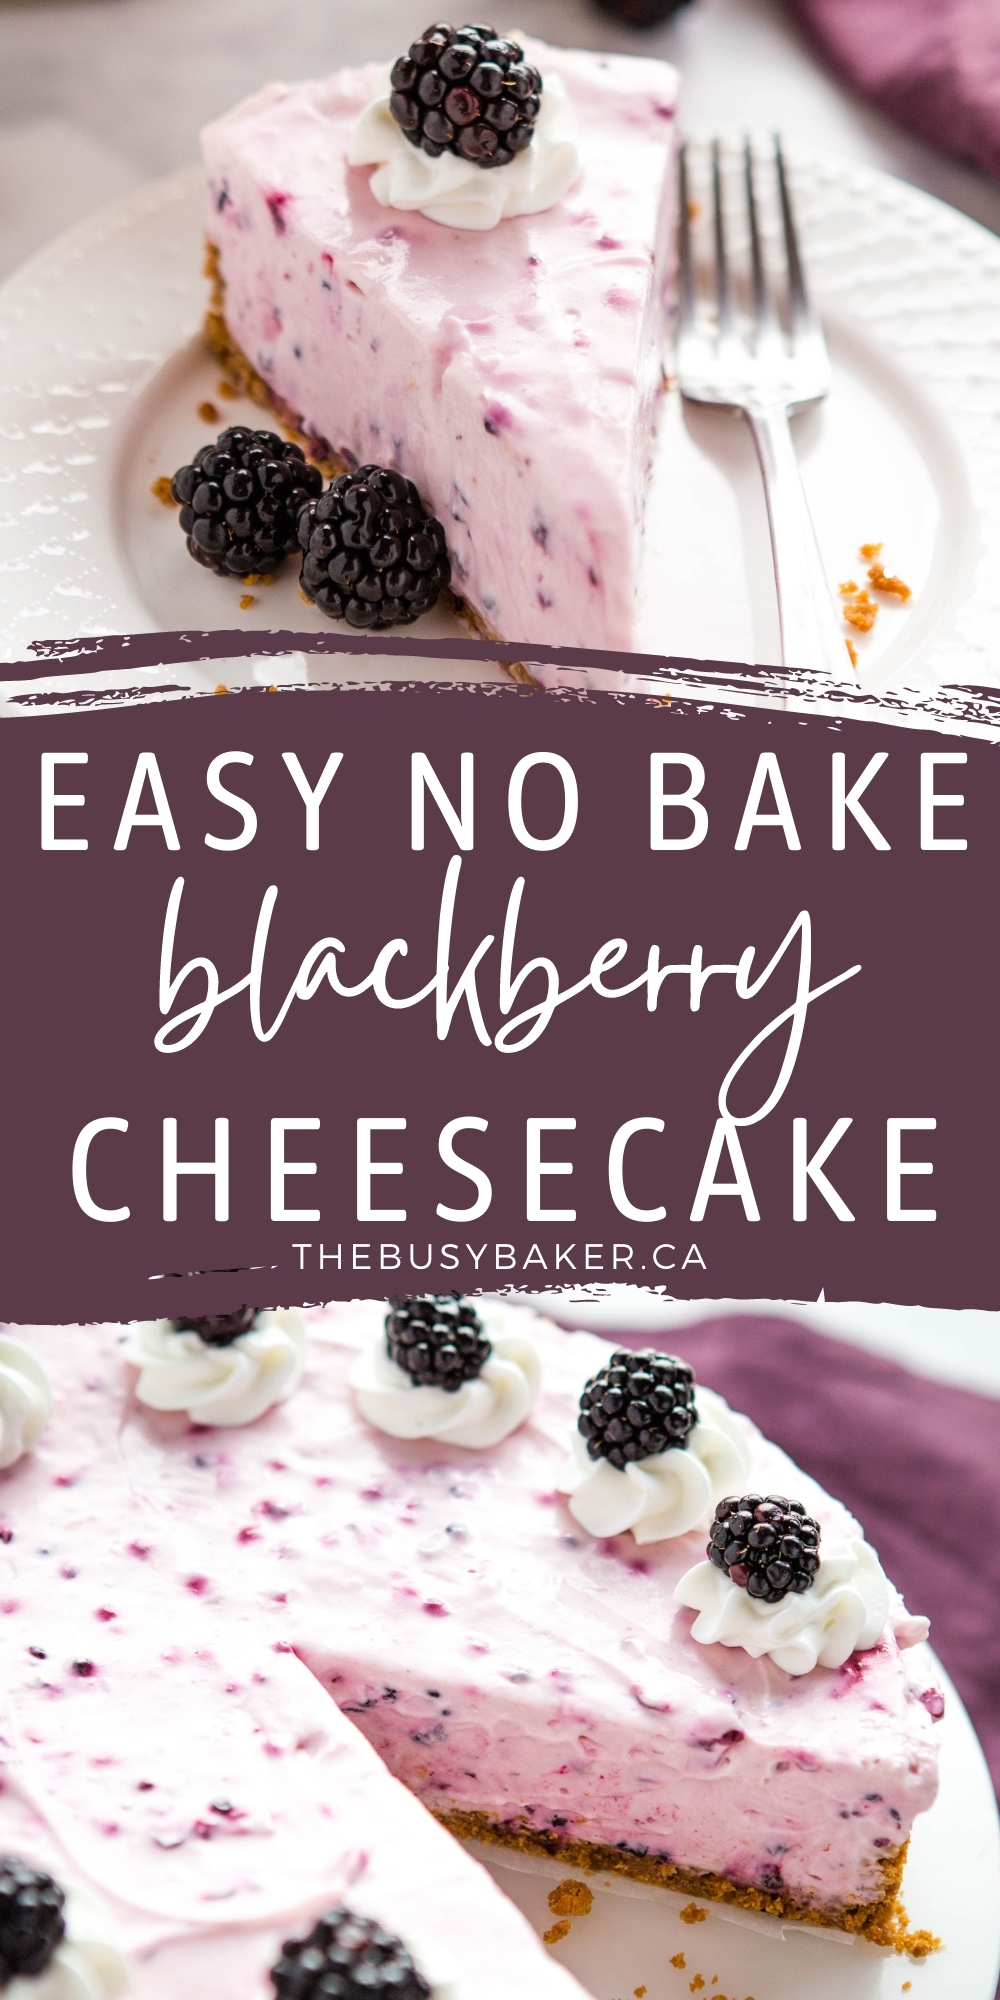 This No Bake Blackberry Cheesecake is the perfect easy-to-make cheesecake dessert that's ultra creamy, silky smooth & delicious and packed with fresh juicy blackberries!Recipe from thebusybaker.ca! #cheesecake #nobake #summer #summerdessert #blackberry #blackberries #berrydessert #freshberries #summerberry via @busybakerblog